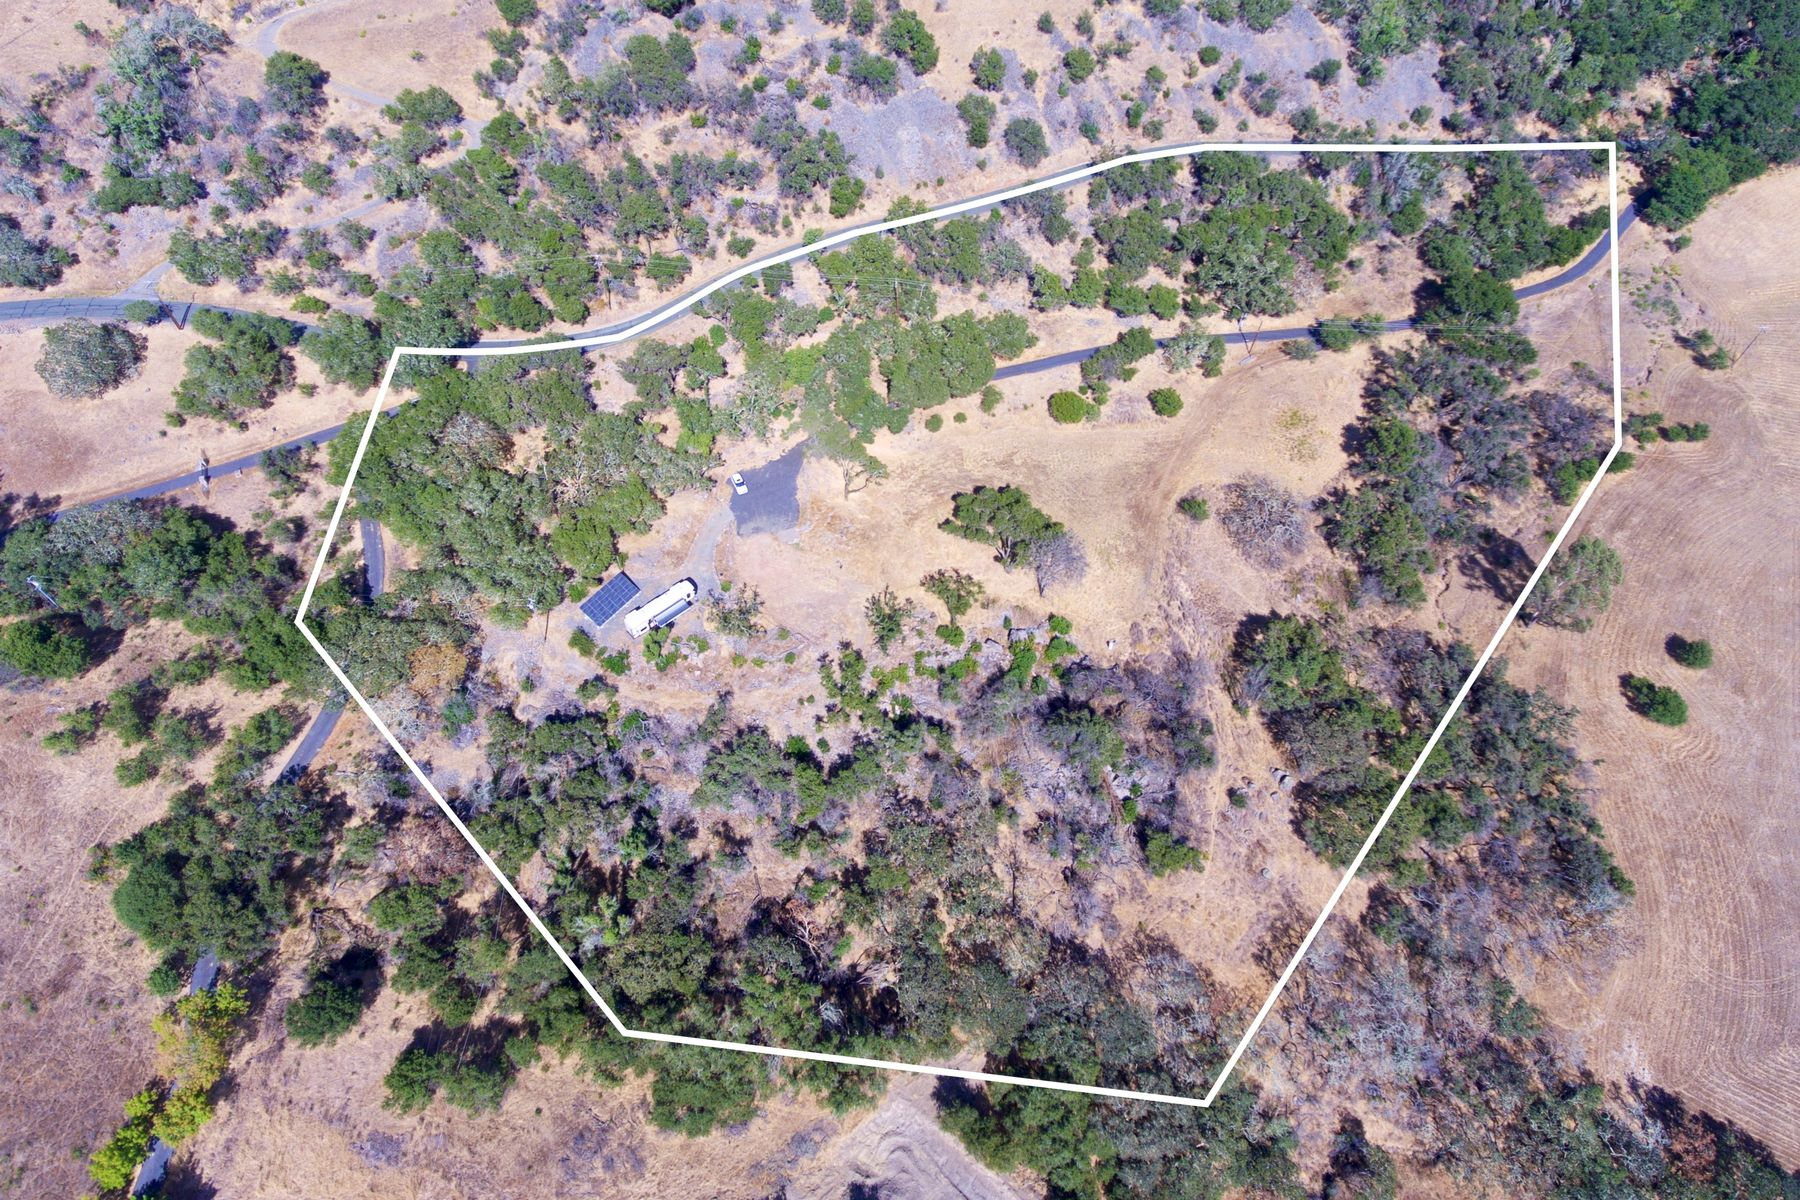 Land for Sale at 9 Acre View Lot in Prestigious Foothills 4647 Wallace Rd N Santa Rosa, California 95404 United States